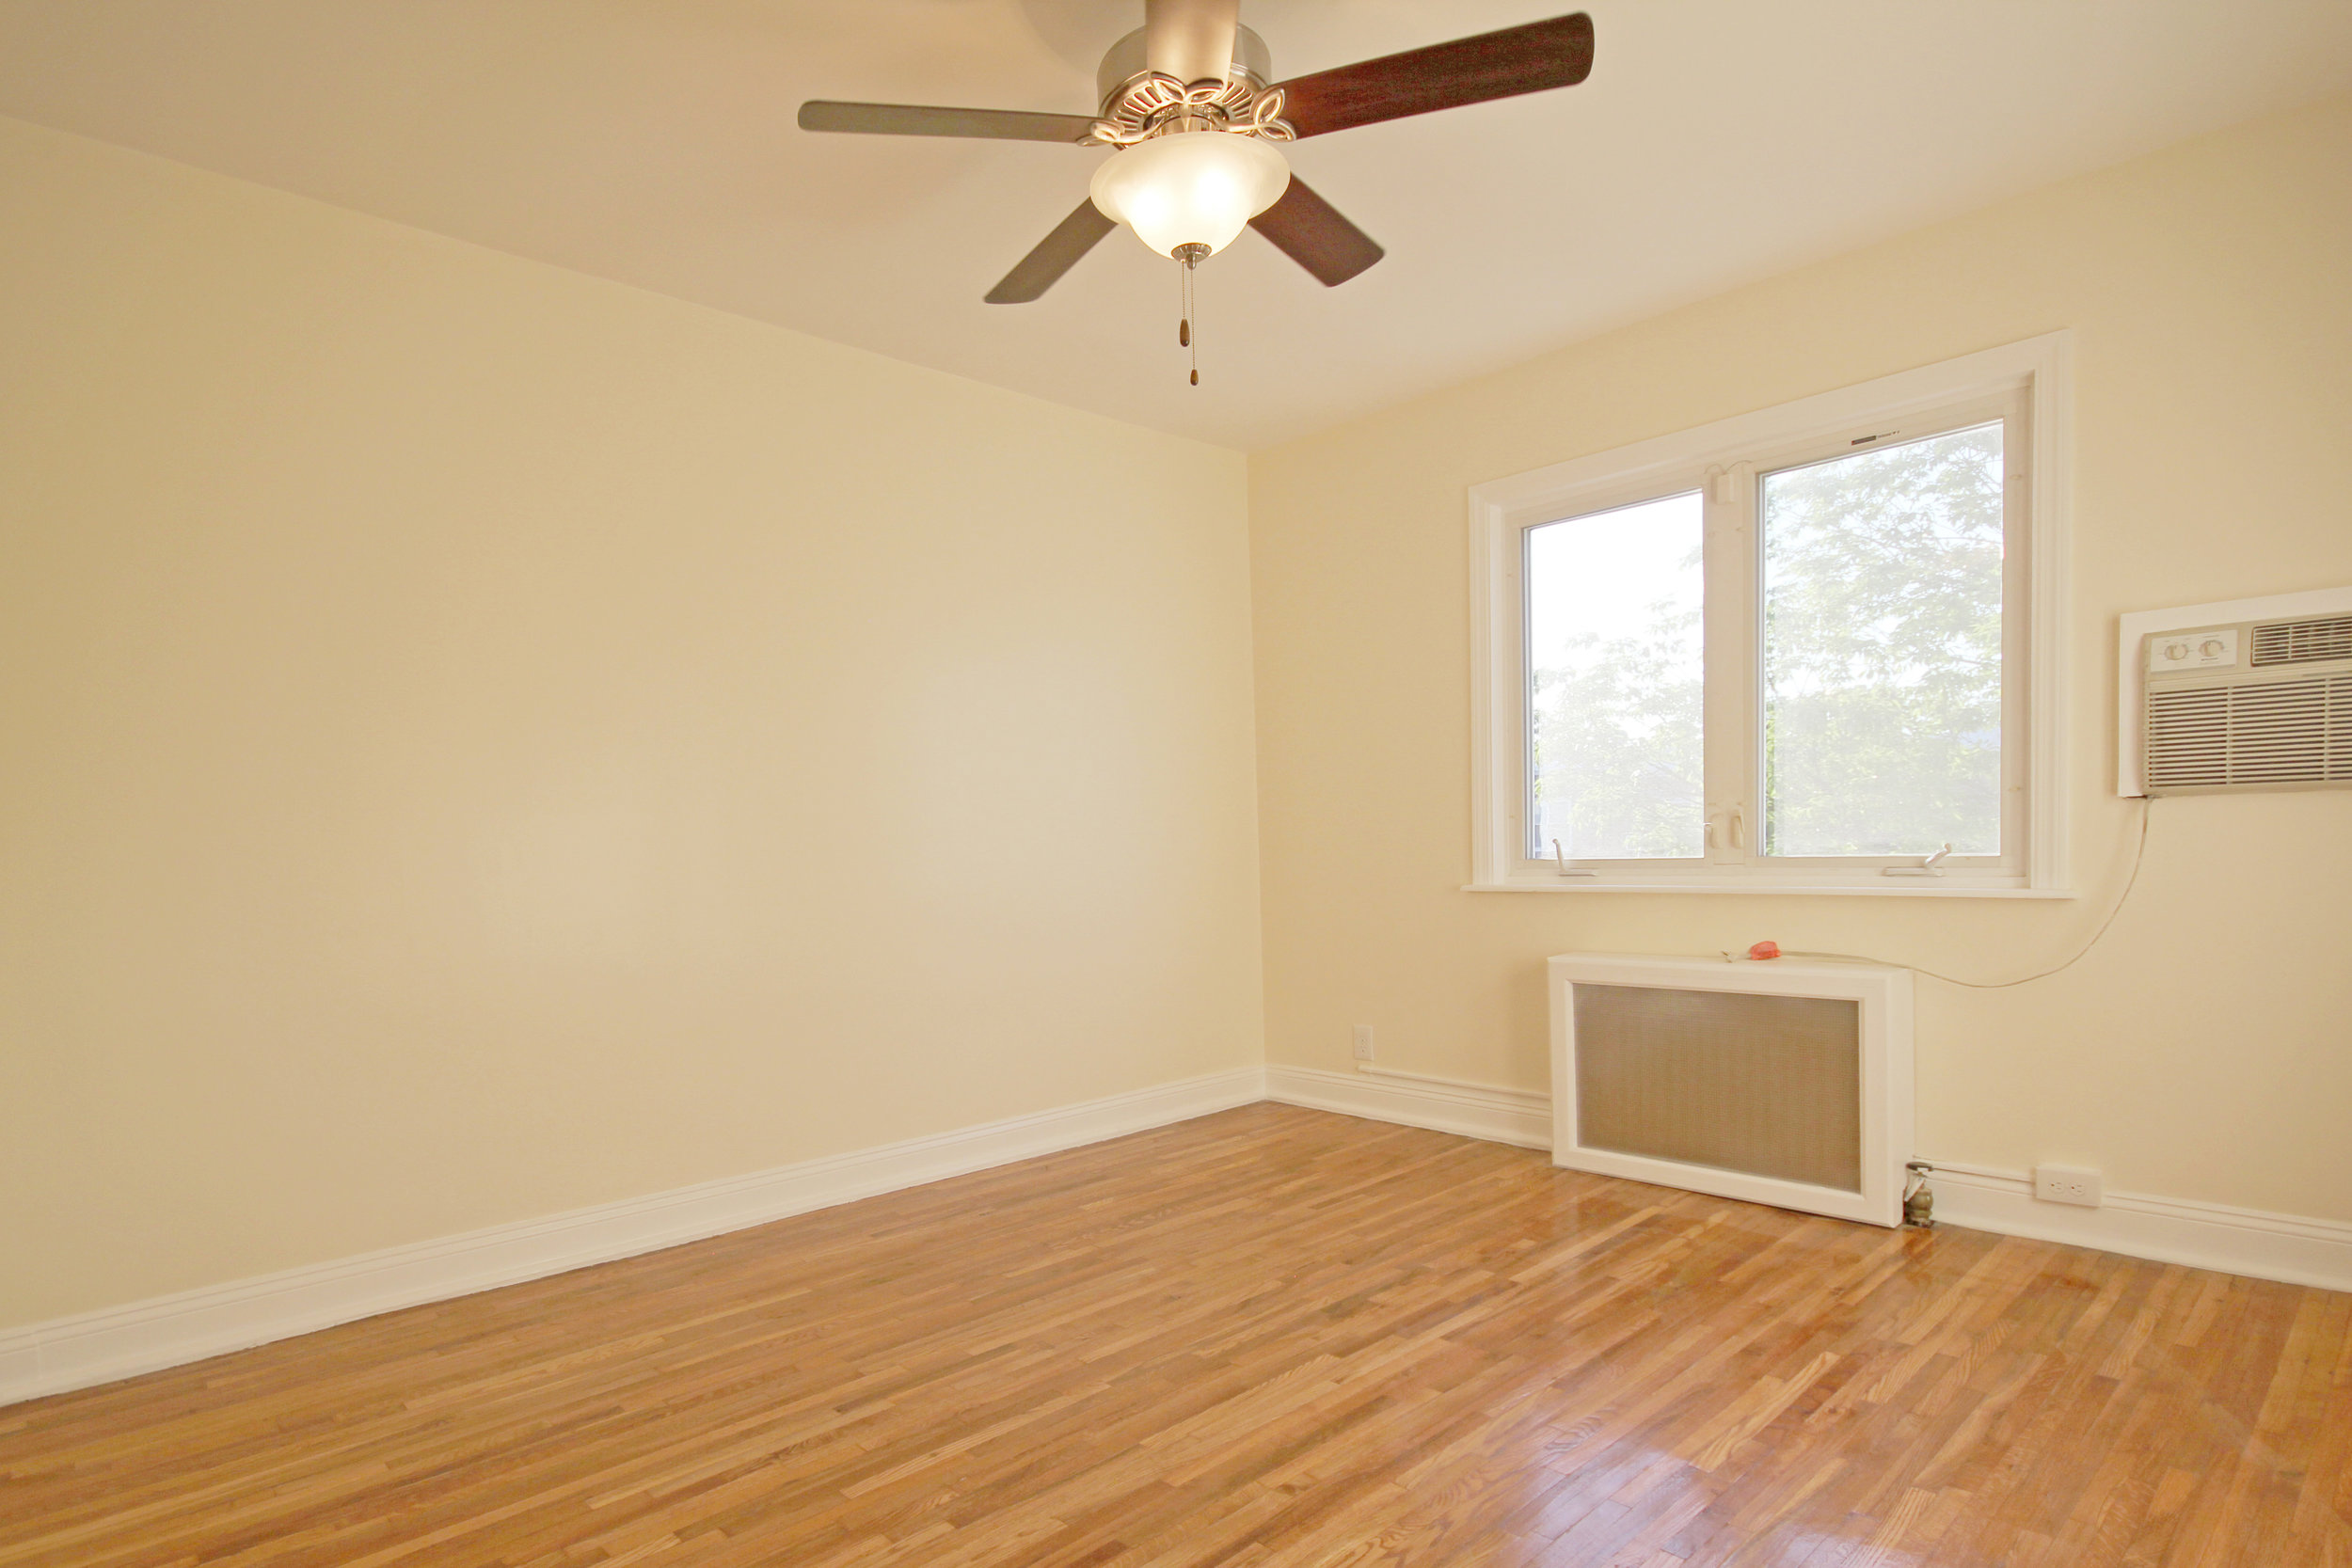 150-31 78th Avenue-bedroom3.jpg